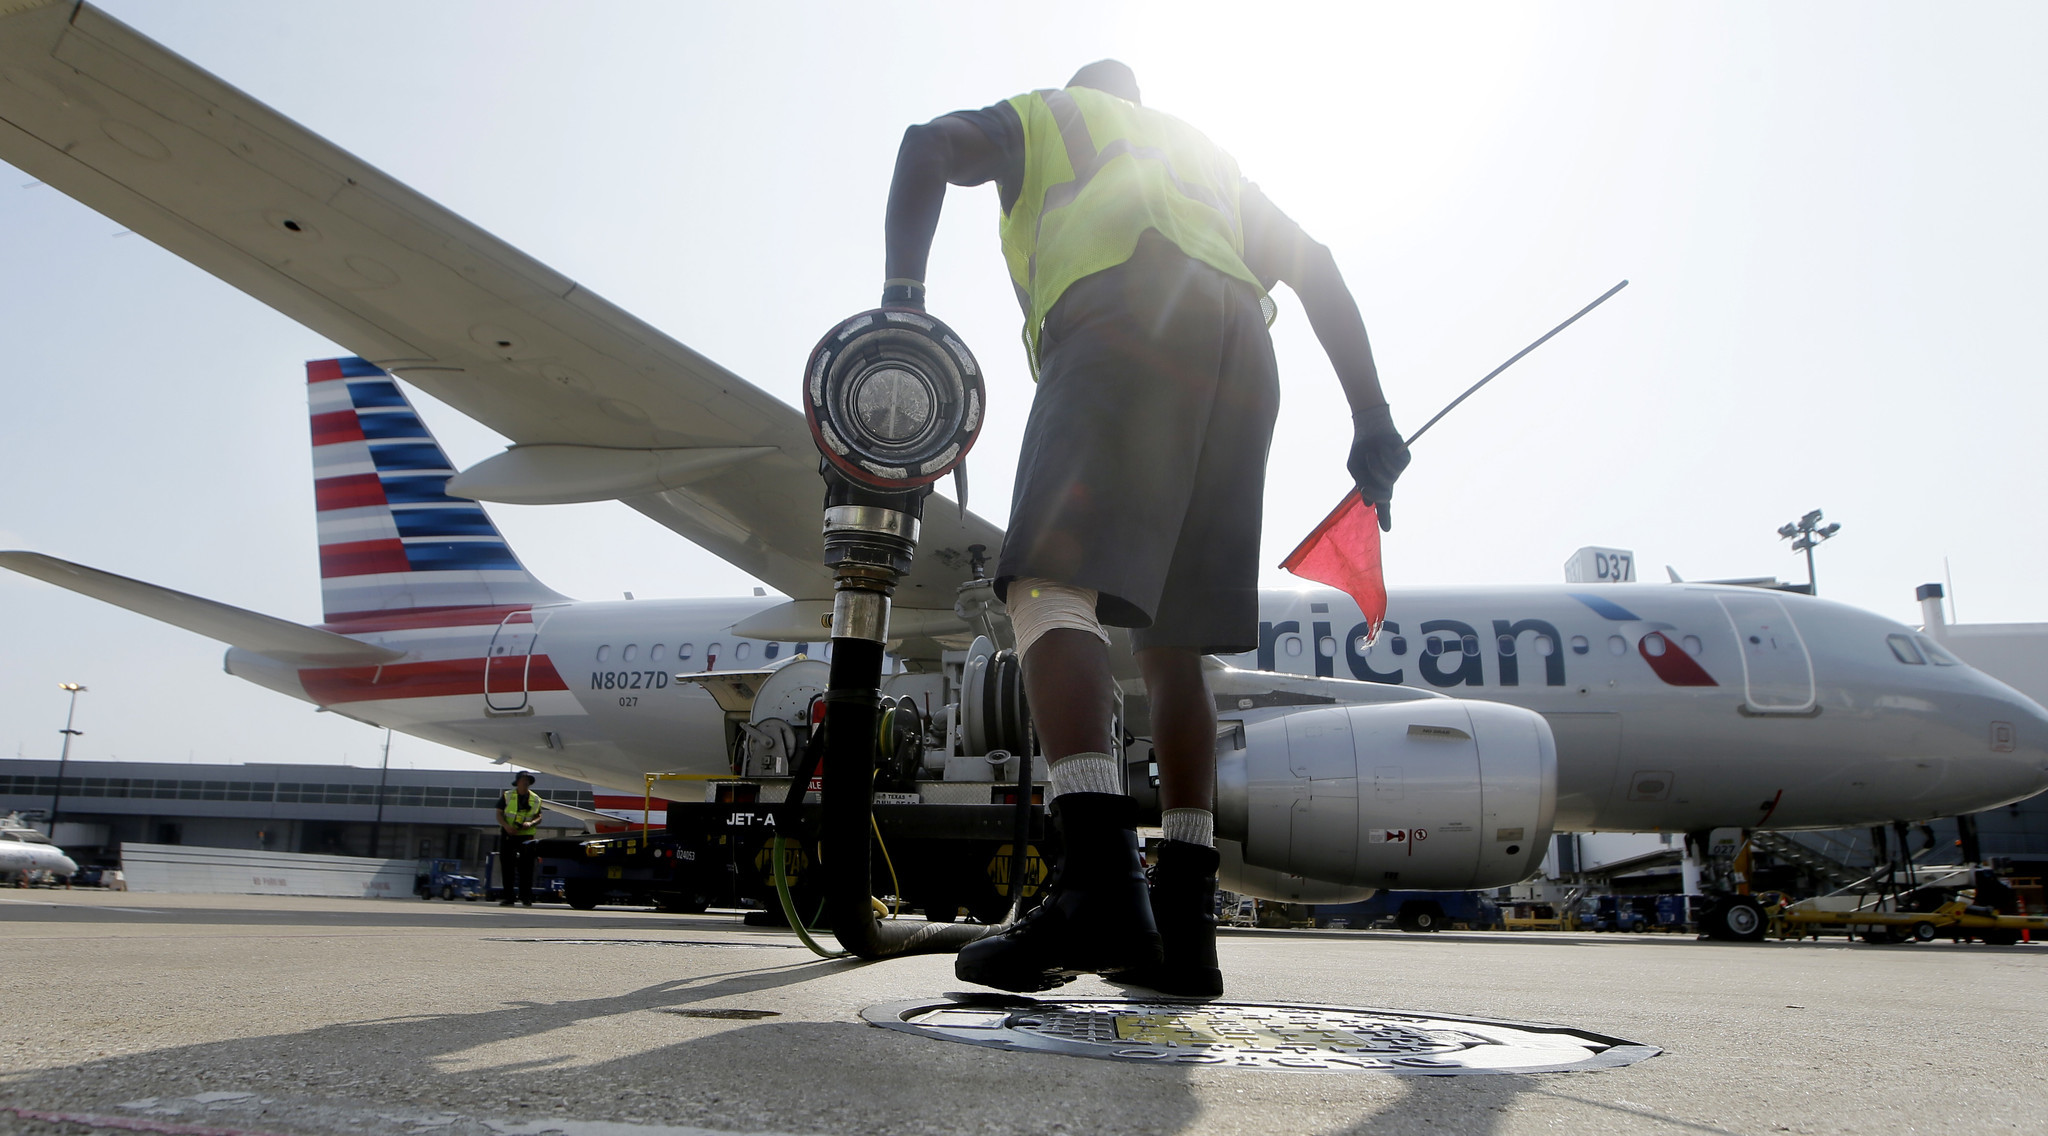 Airfares continue to drop even as jet fuel prices climb